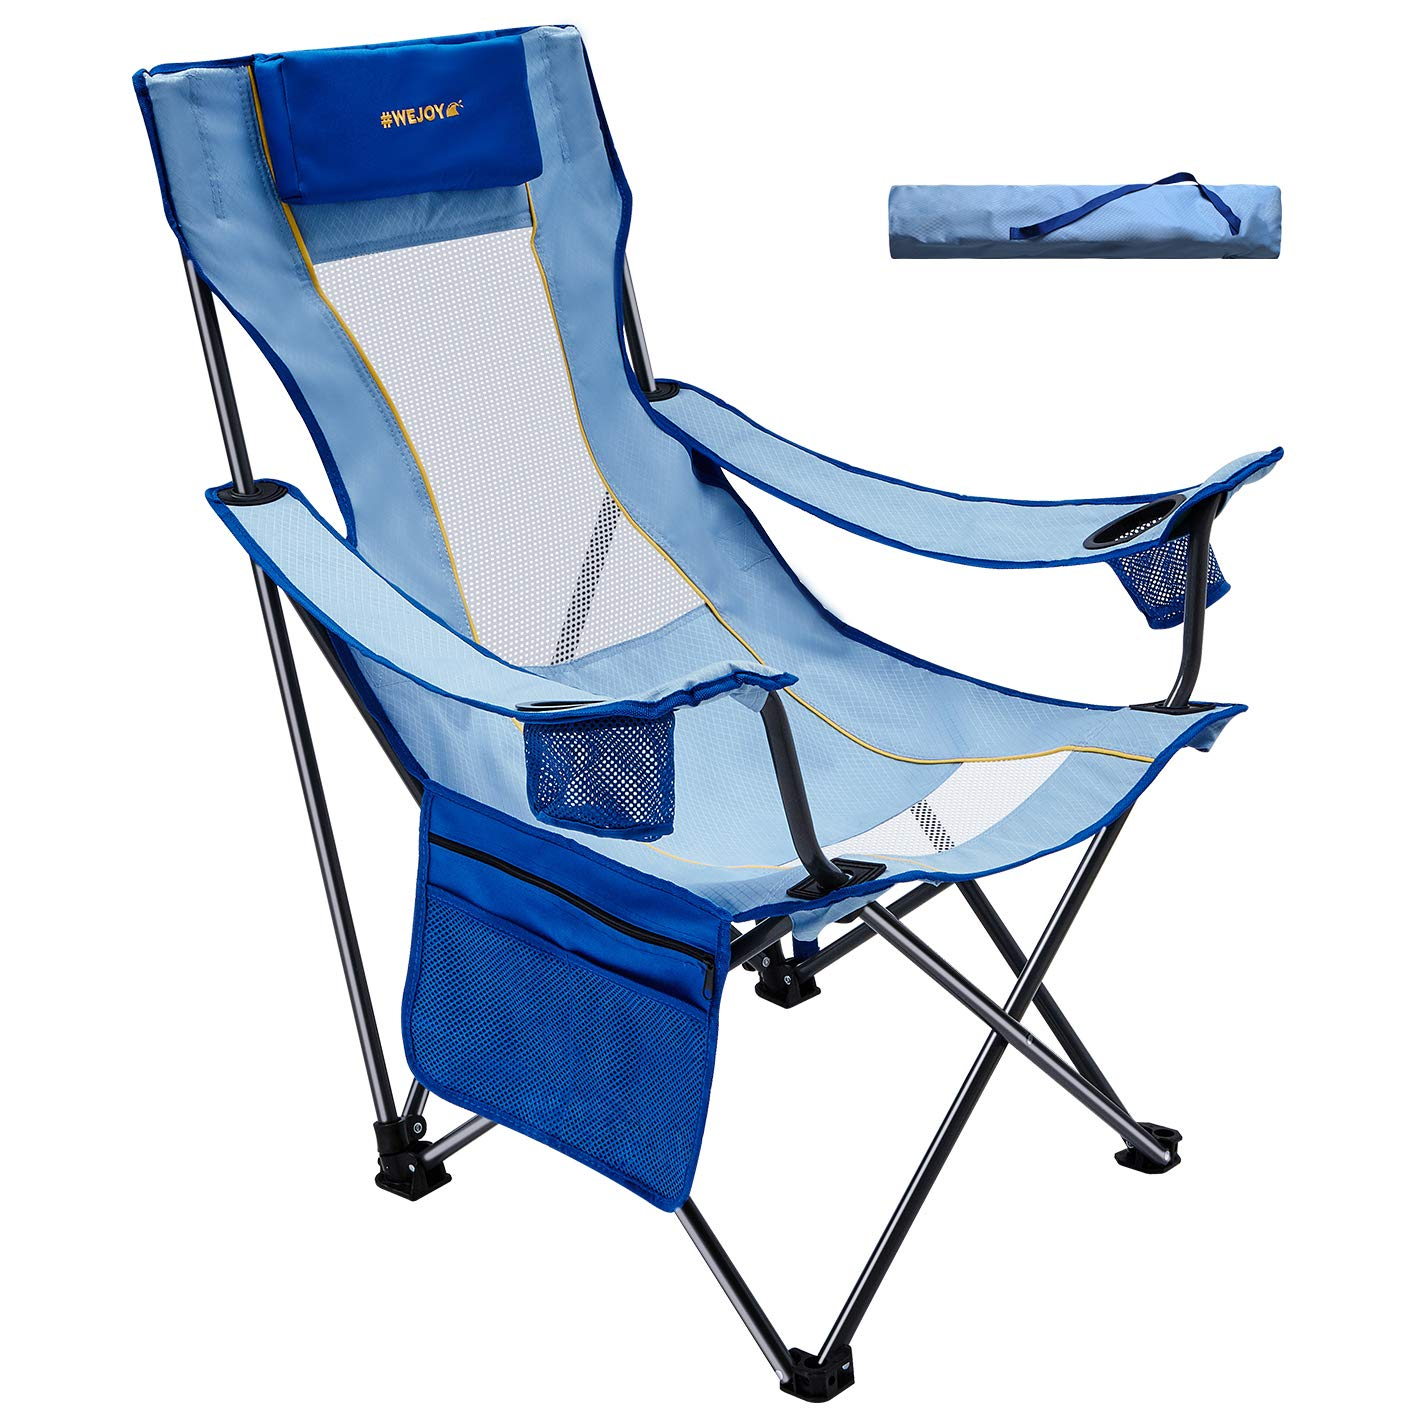 WEJOY Comfortable Seat/Back Folding Beach Chair